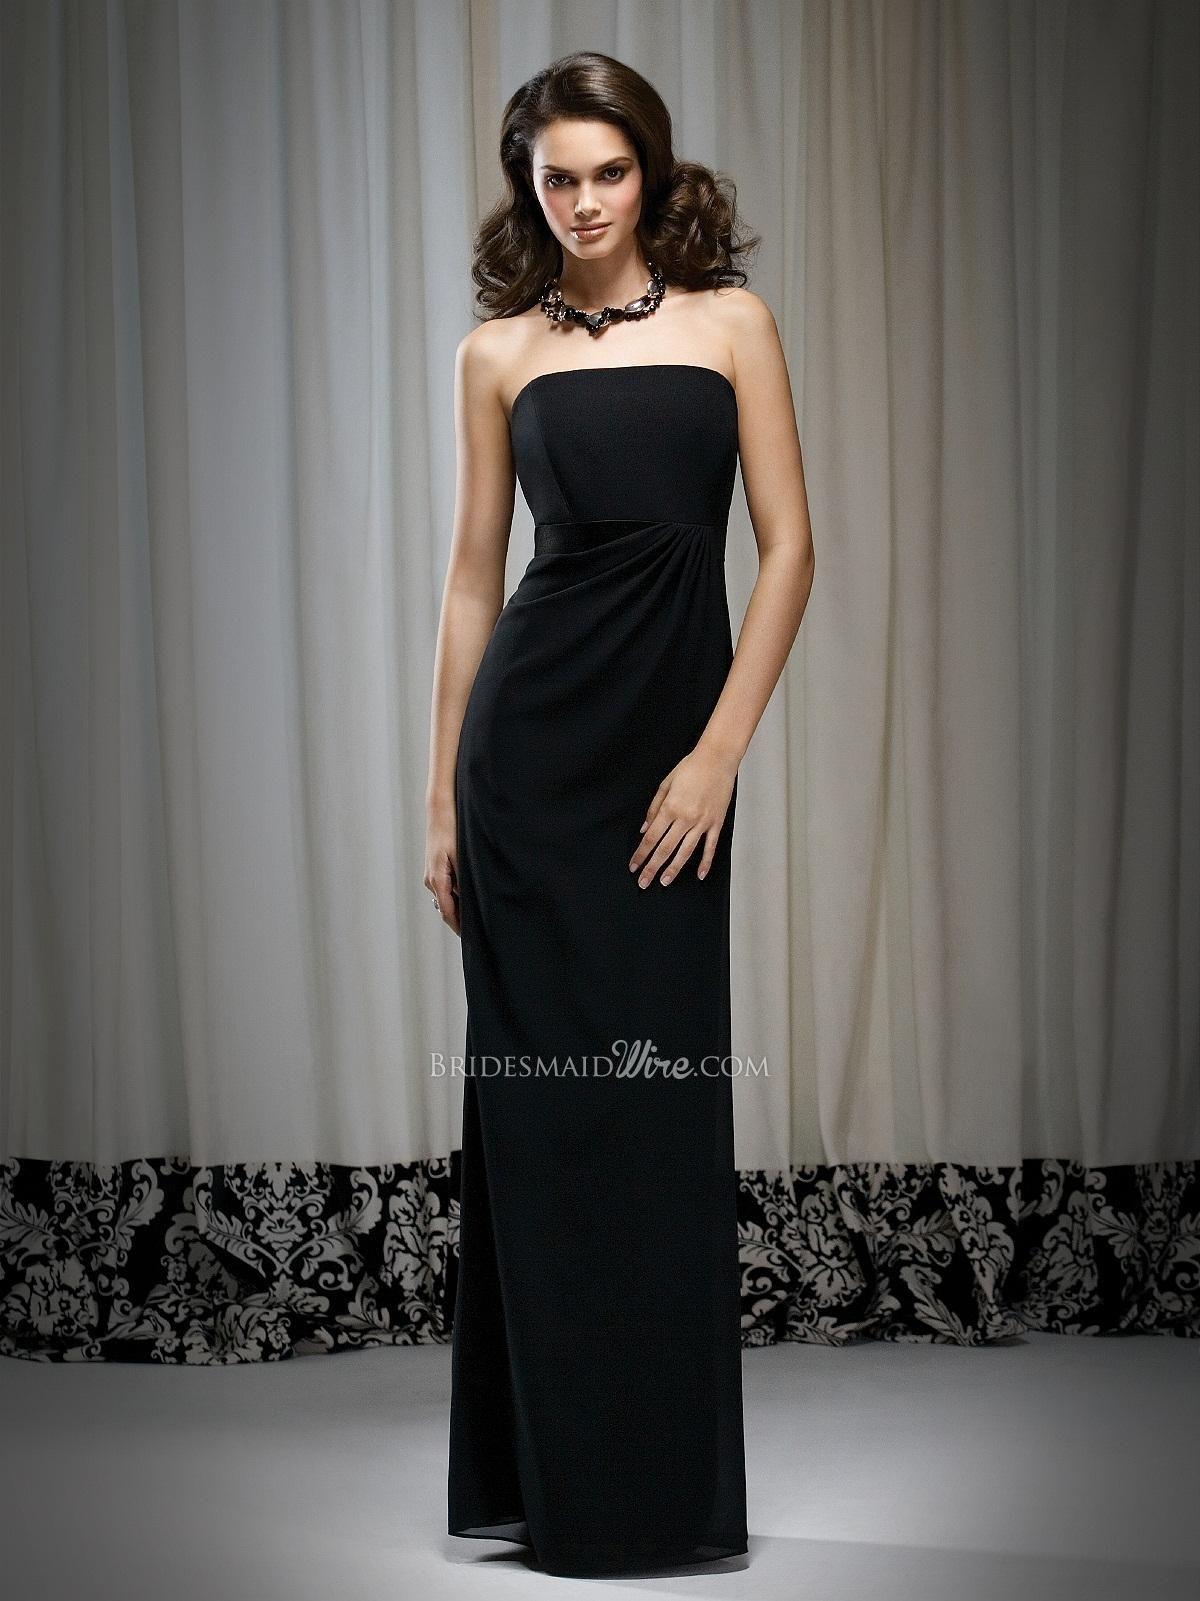 Charming Floor Length Strapless Georgette Black Draped Bridesmaid Dress.$ 498.00 Off  $193.64